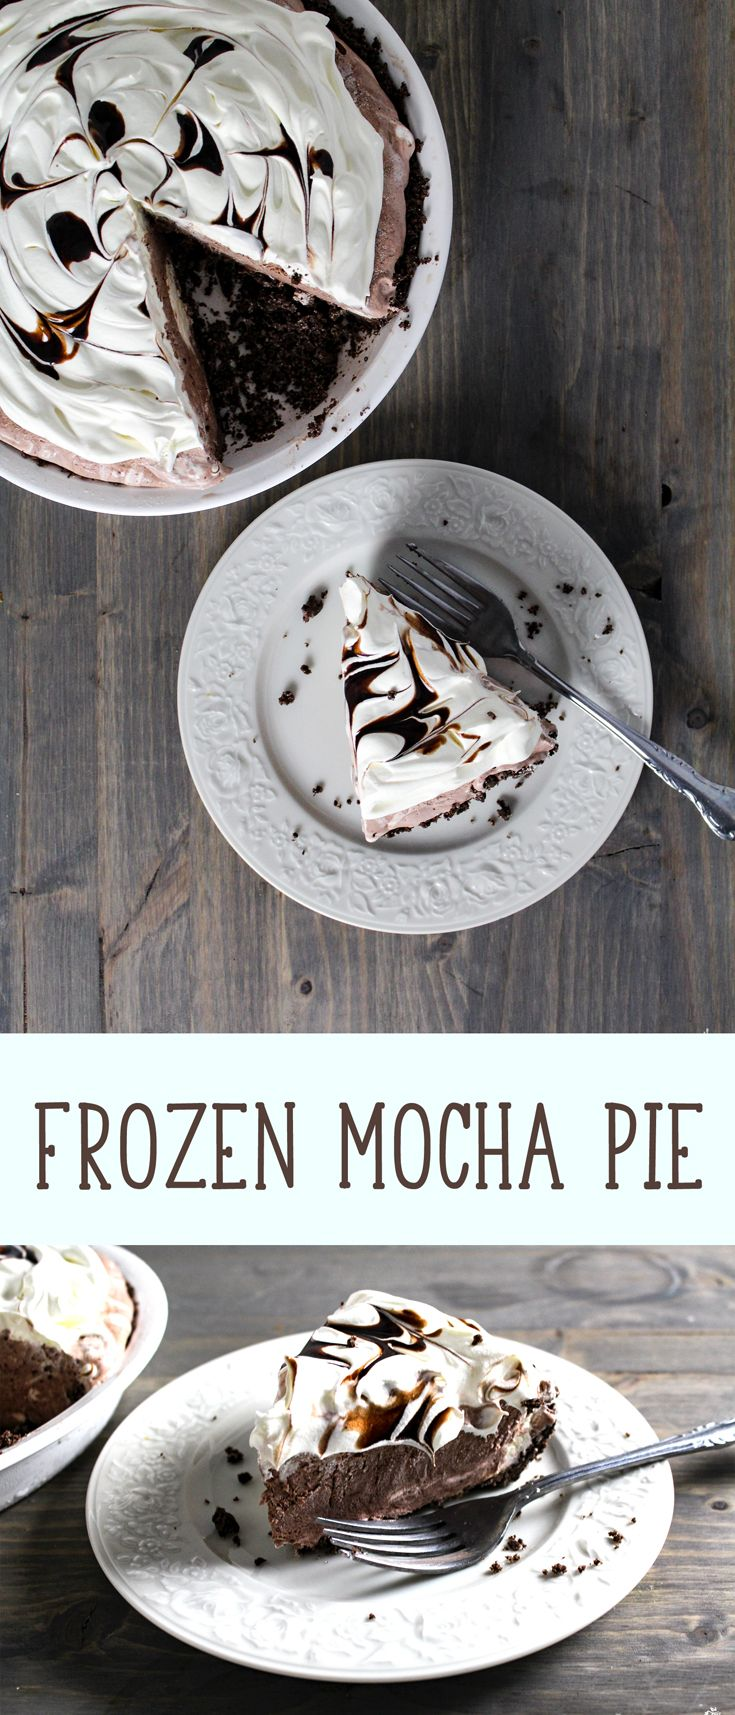 Chocolate and coffee lovers, this Frozen Mocha Pie is for you.  Chocolaty and coffee crust with creamy and dreamy mocha filling.  A pie to die for!  #pie #mocha #easydessertrecipe